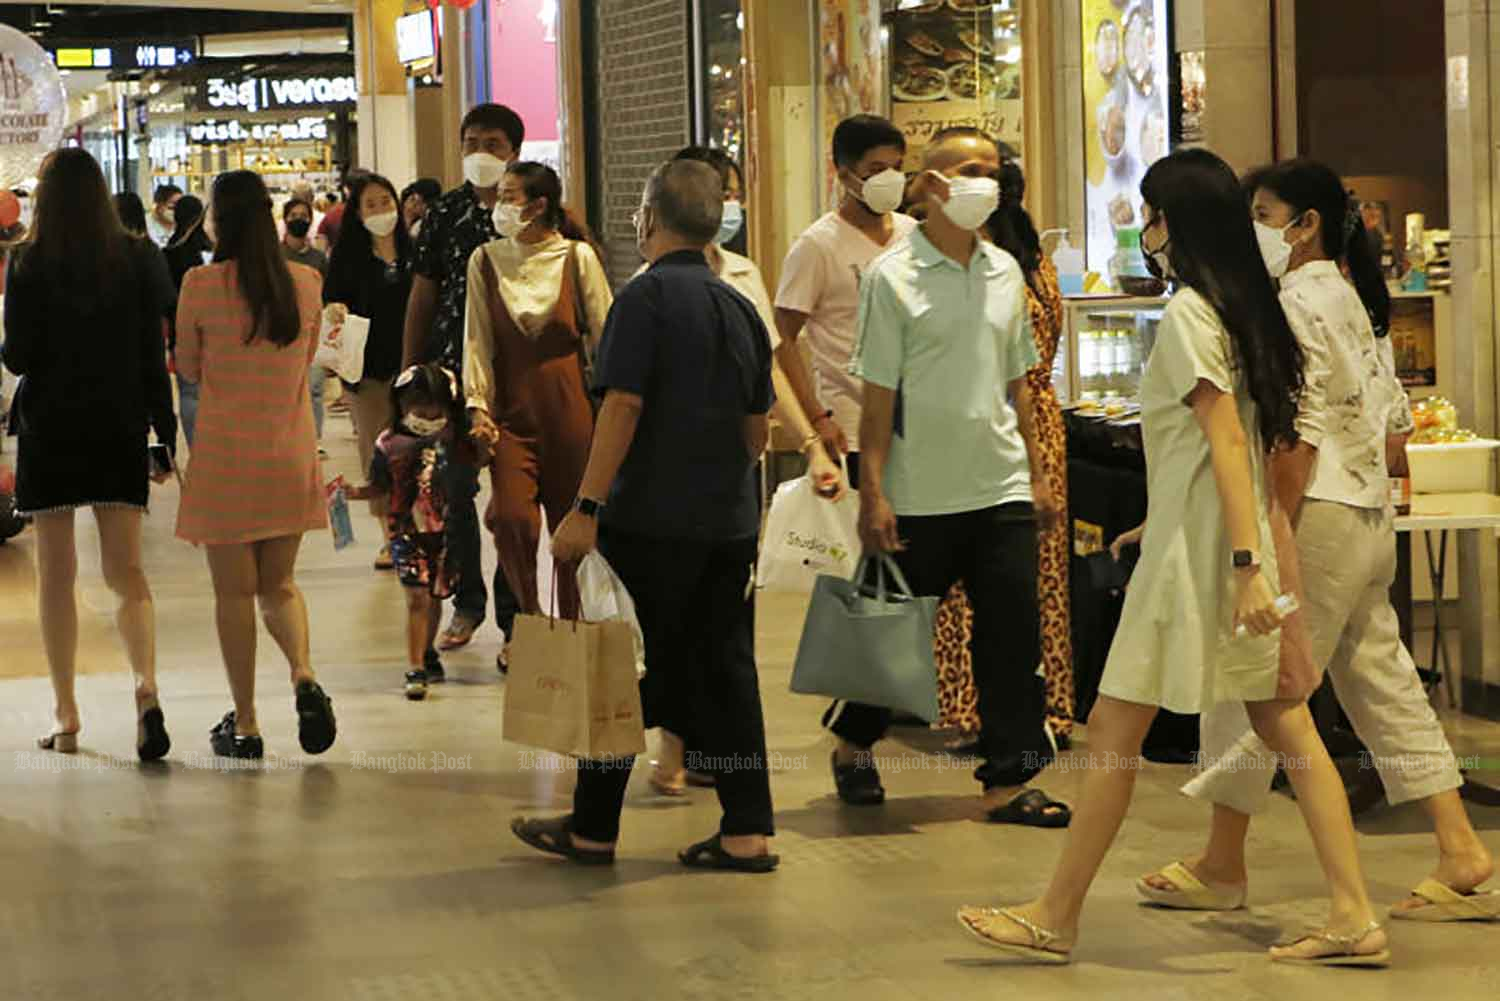 Customers at a shopping centre in Pathum Thani operating under Covid-19 controls on Tuesday. (Photo: Apichit Jinakul)